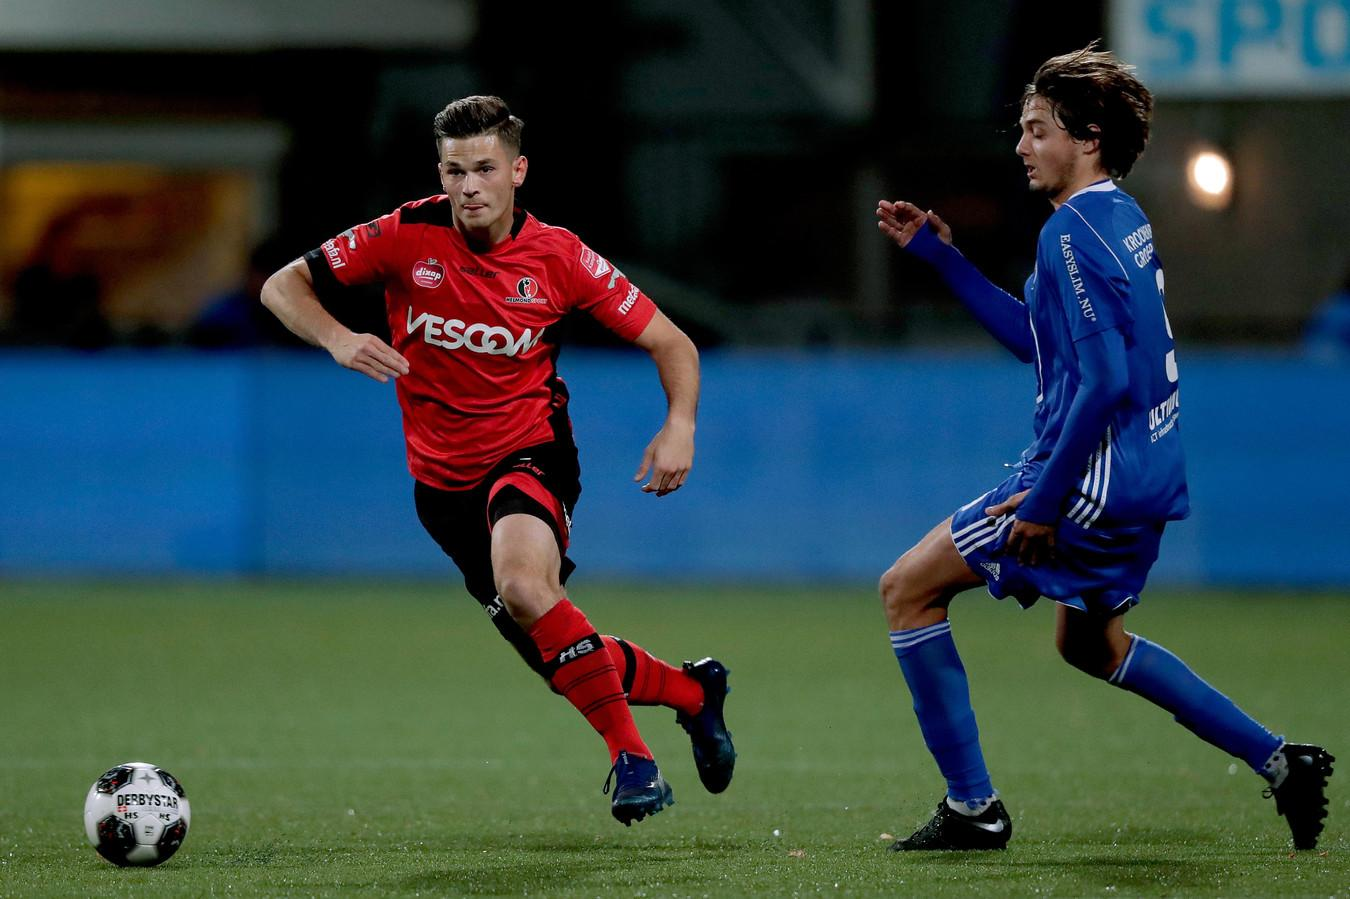 Helmond Sport vs. Almere City: who will gain three points?